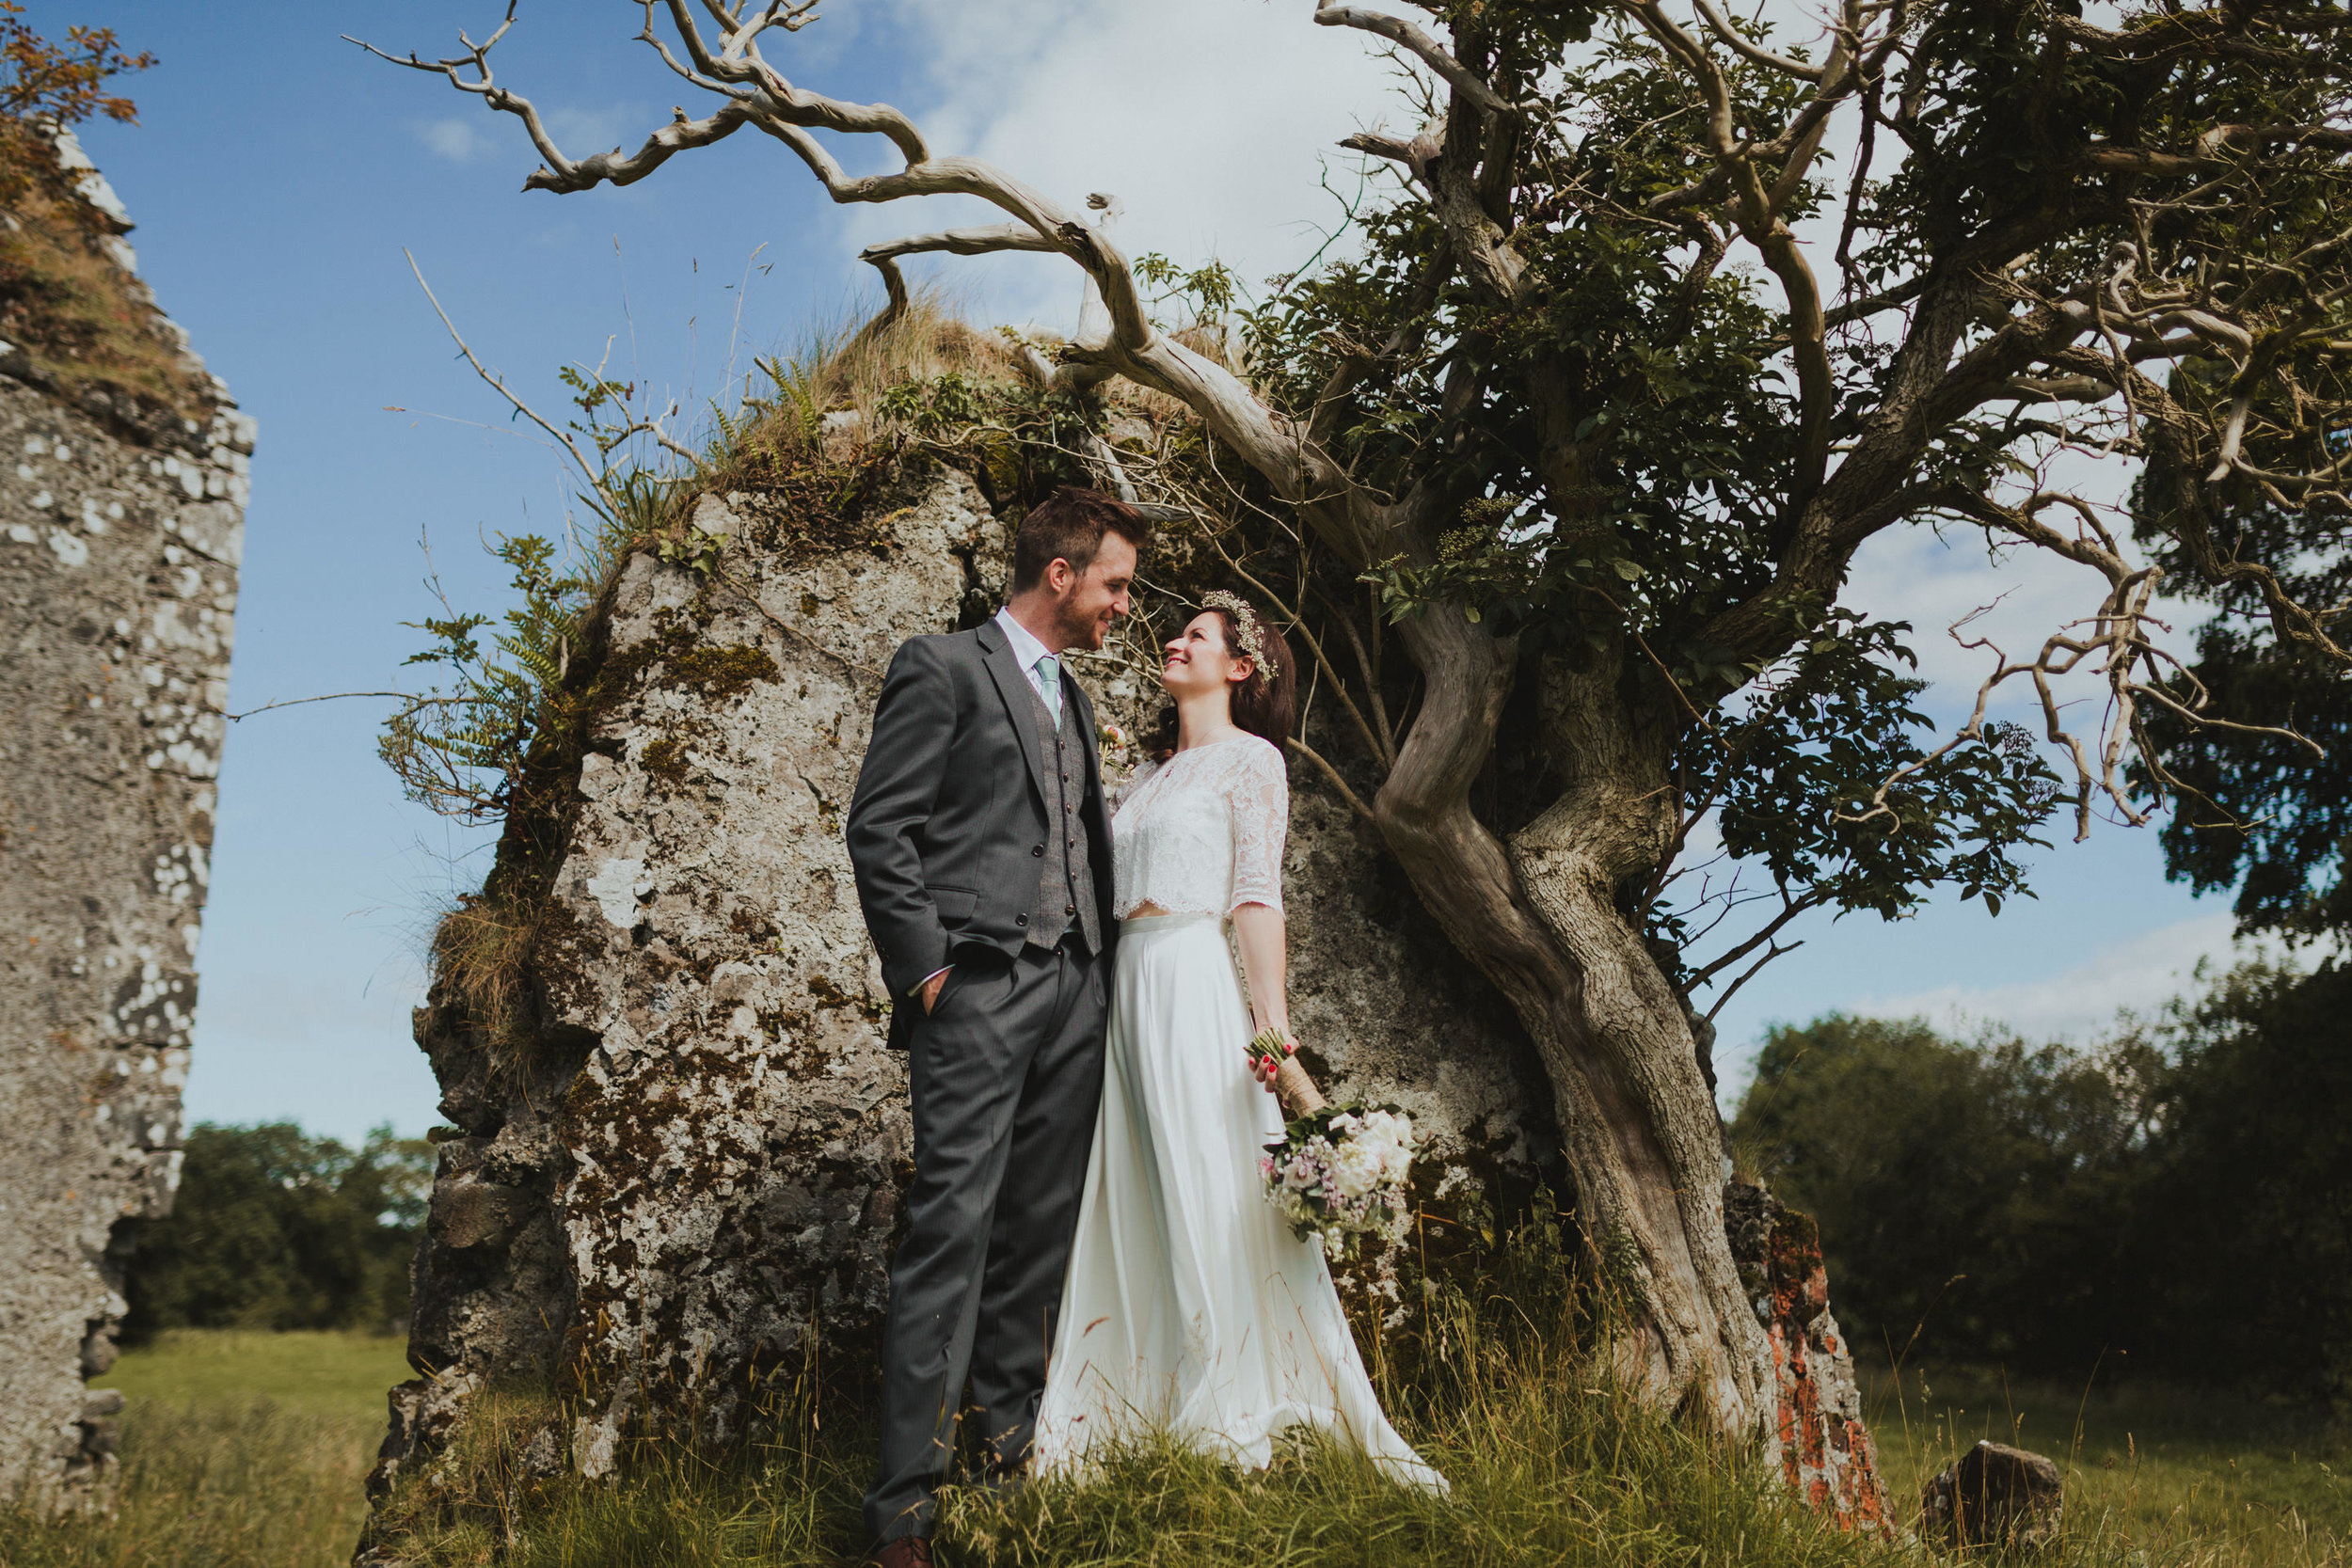 a+s_temple_house_sligo_wedding_livia_figueiredo_748.jpg